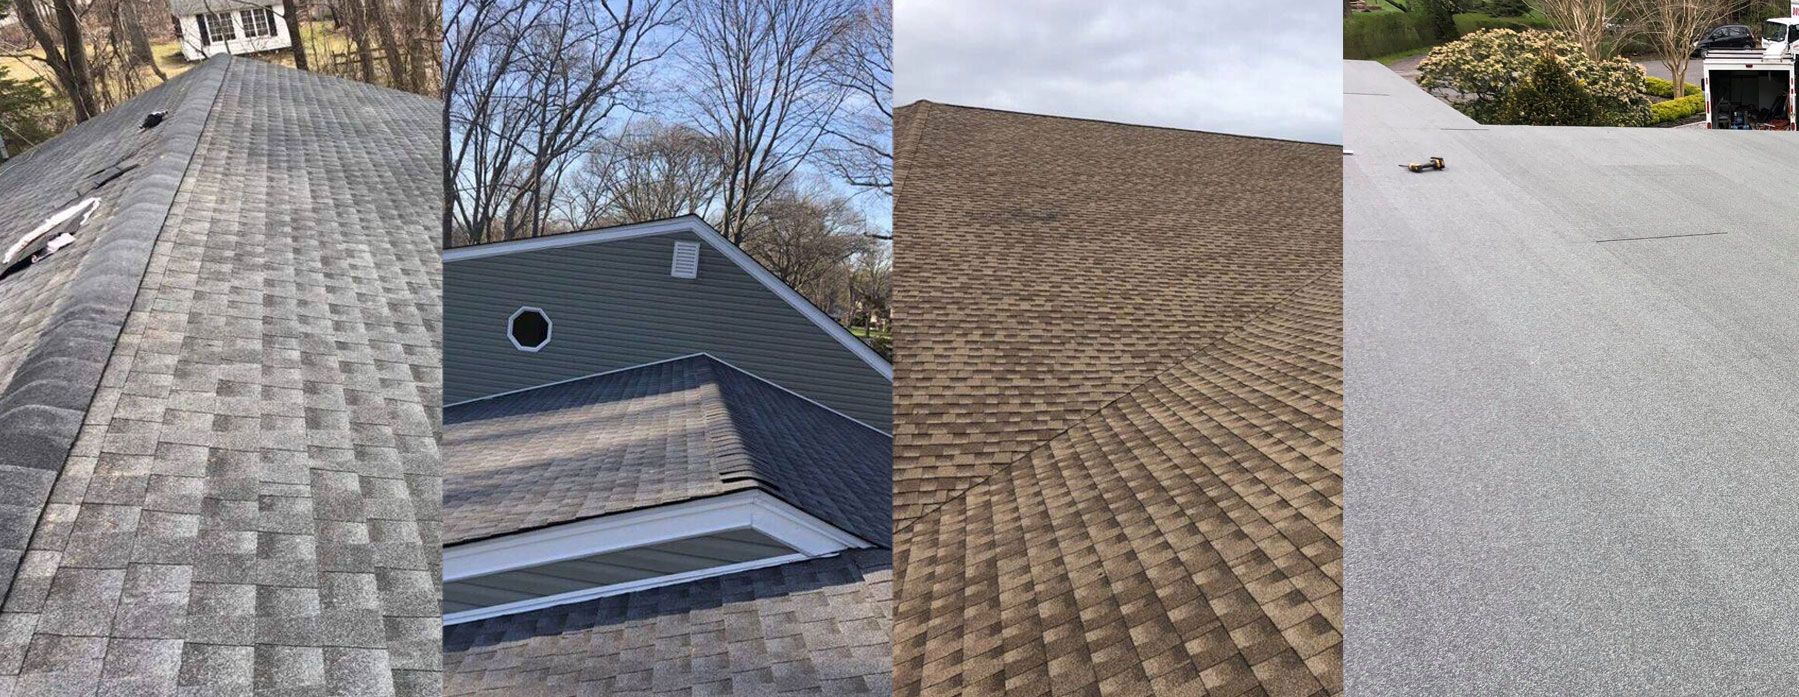 Roof Repair Near Mastic NY 11950